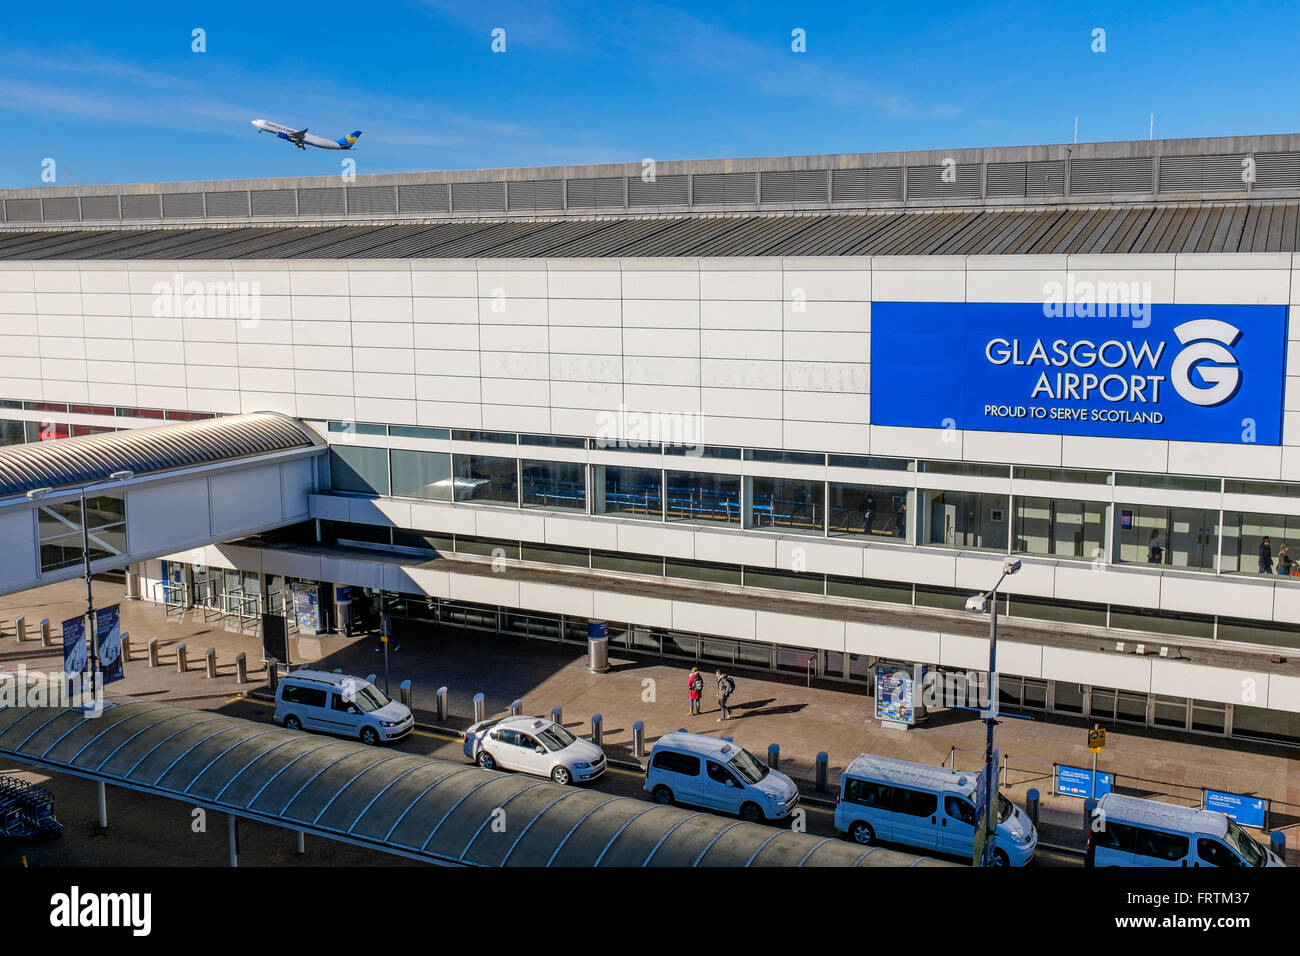 Terminal building of Glasgow Airport, Scotland, UK with taxi rank and planes in the background - Stock Image